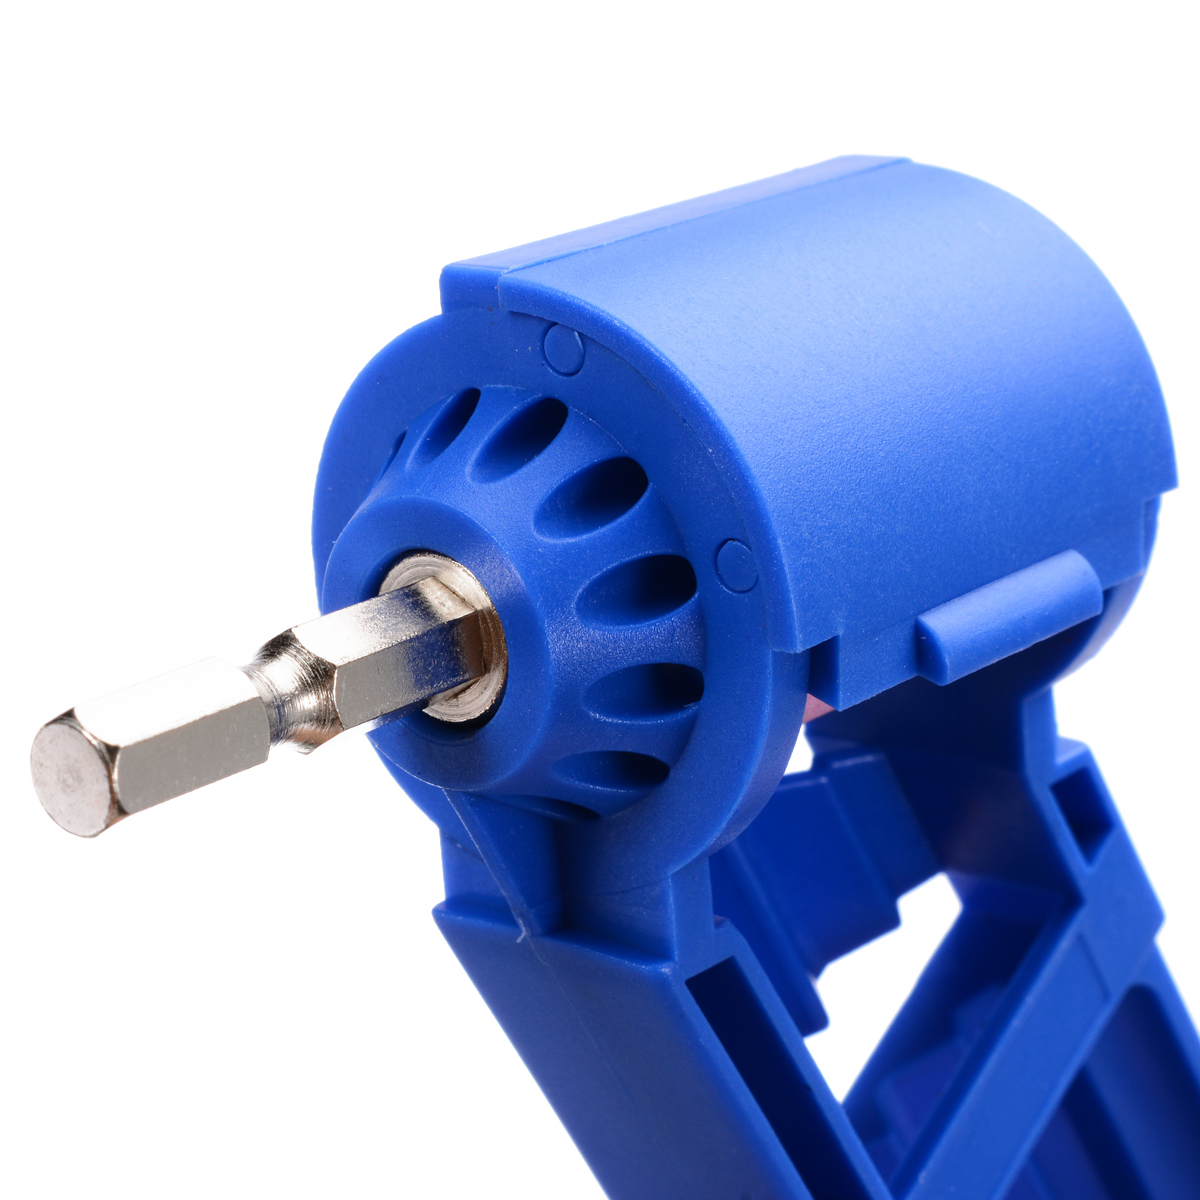 Durable Drill Bit Grinder ABS + Corundum Grinding Wheel Drill Bit Sharpener Electric Titanium Drilling Powered Tool